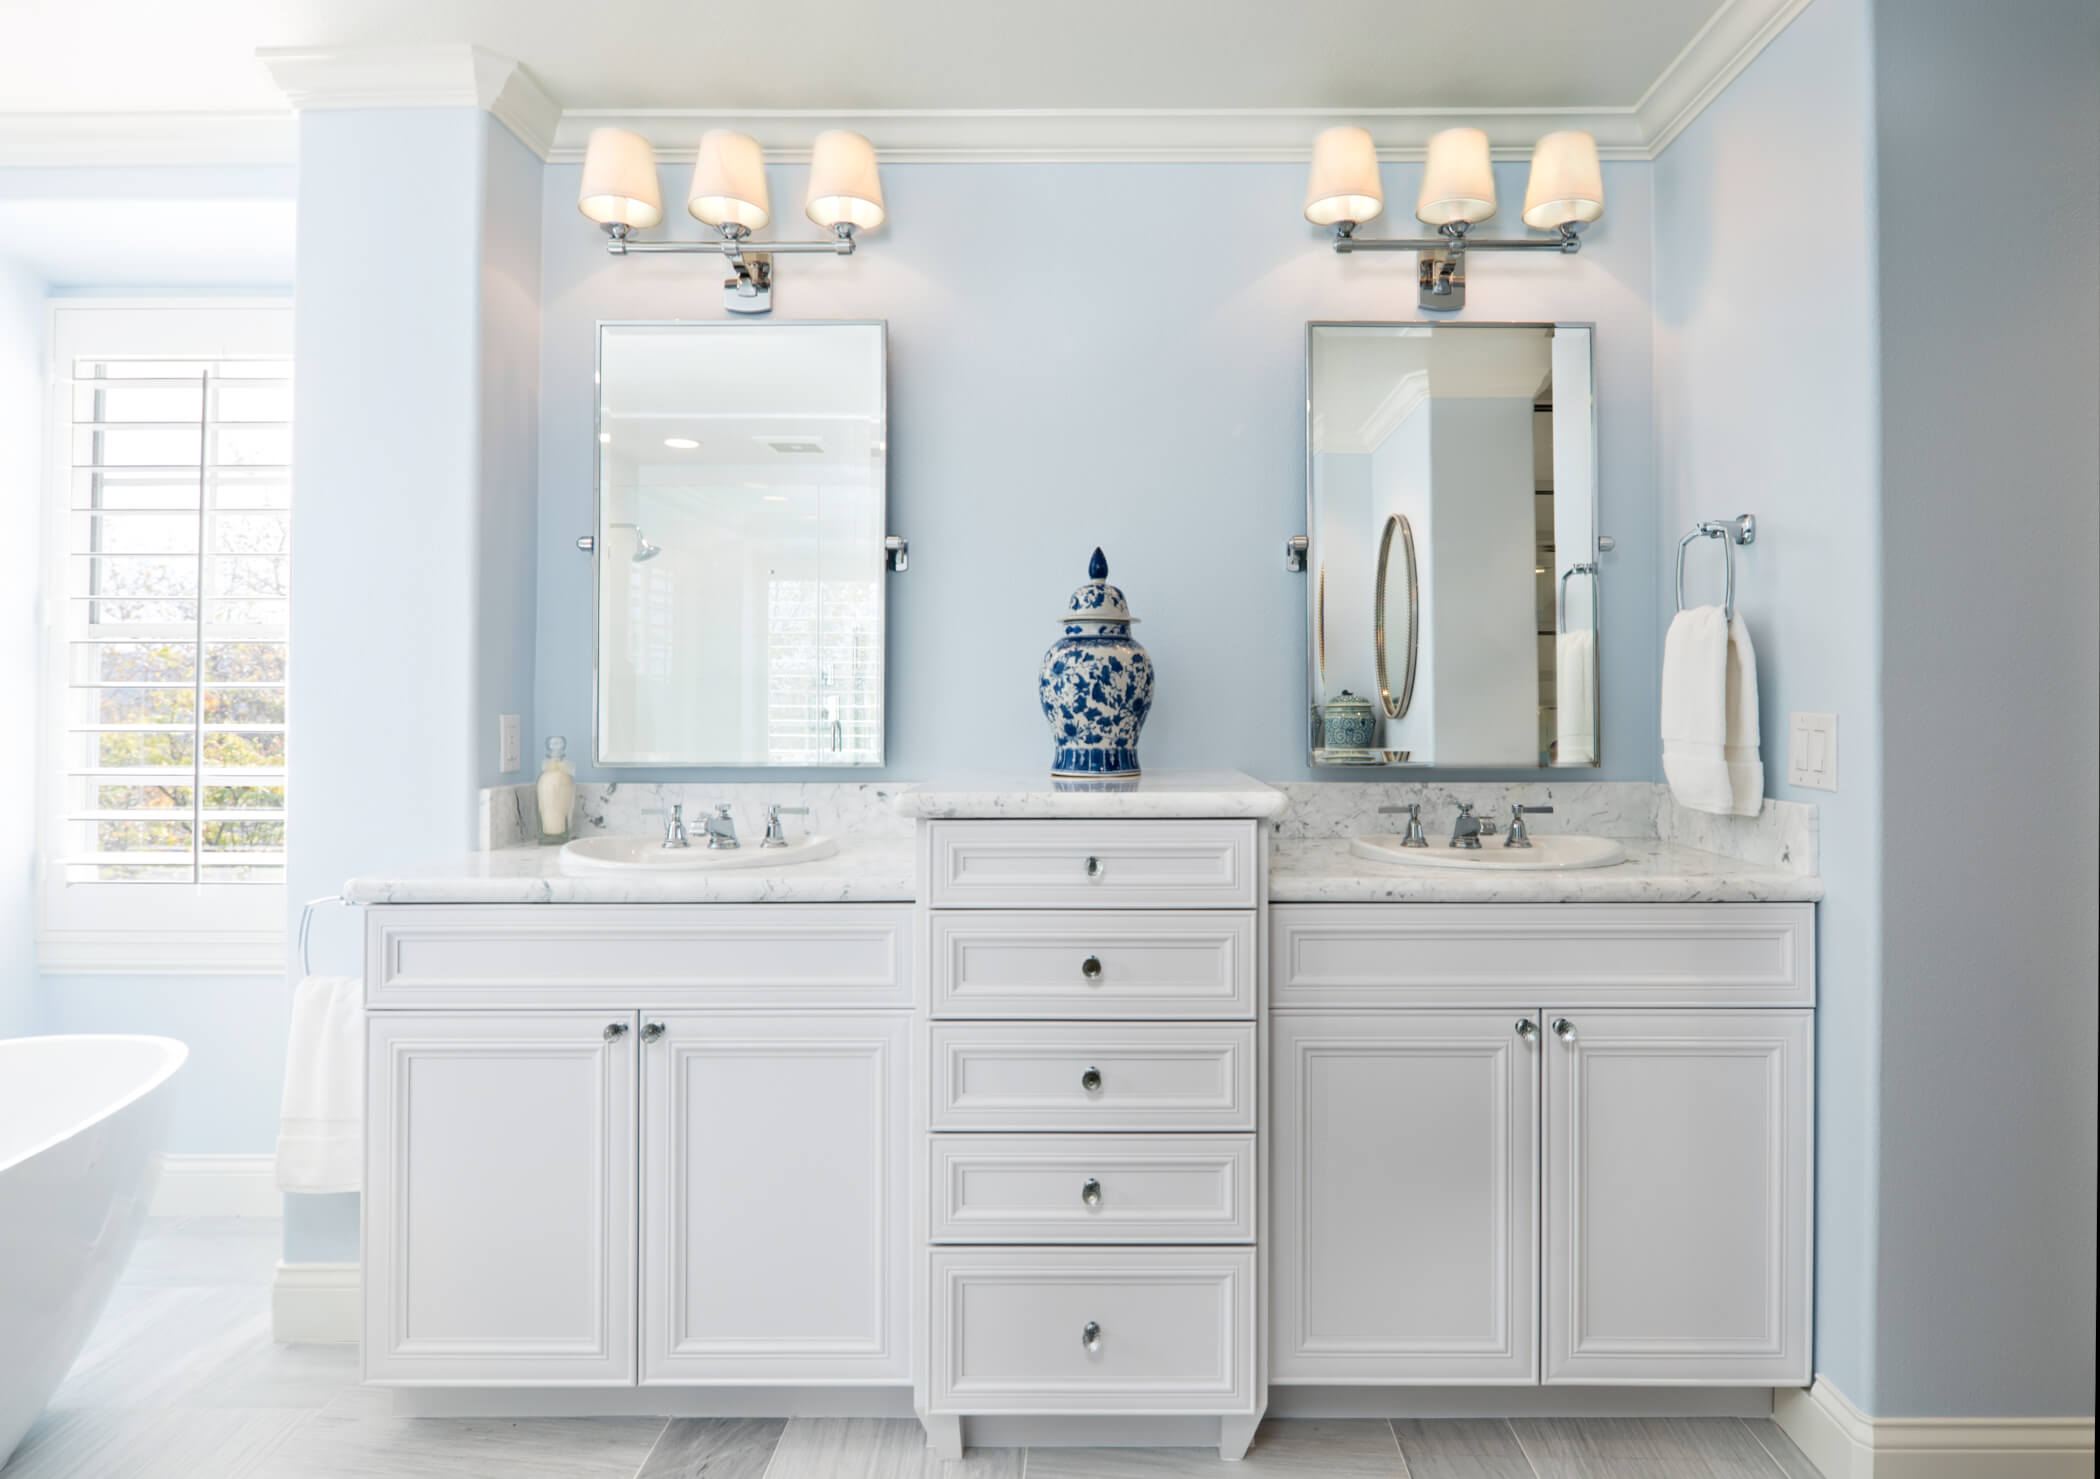 Remodeling home design blog - How much to do a bathroom remodel ...